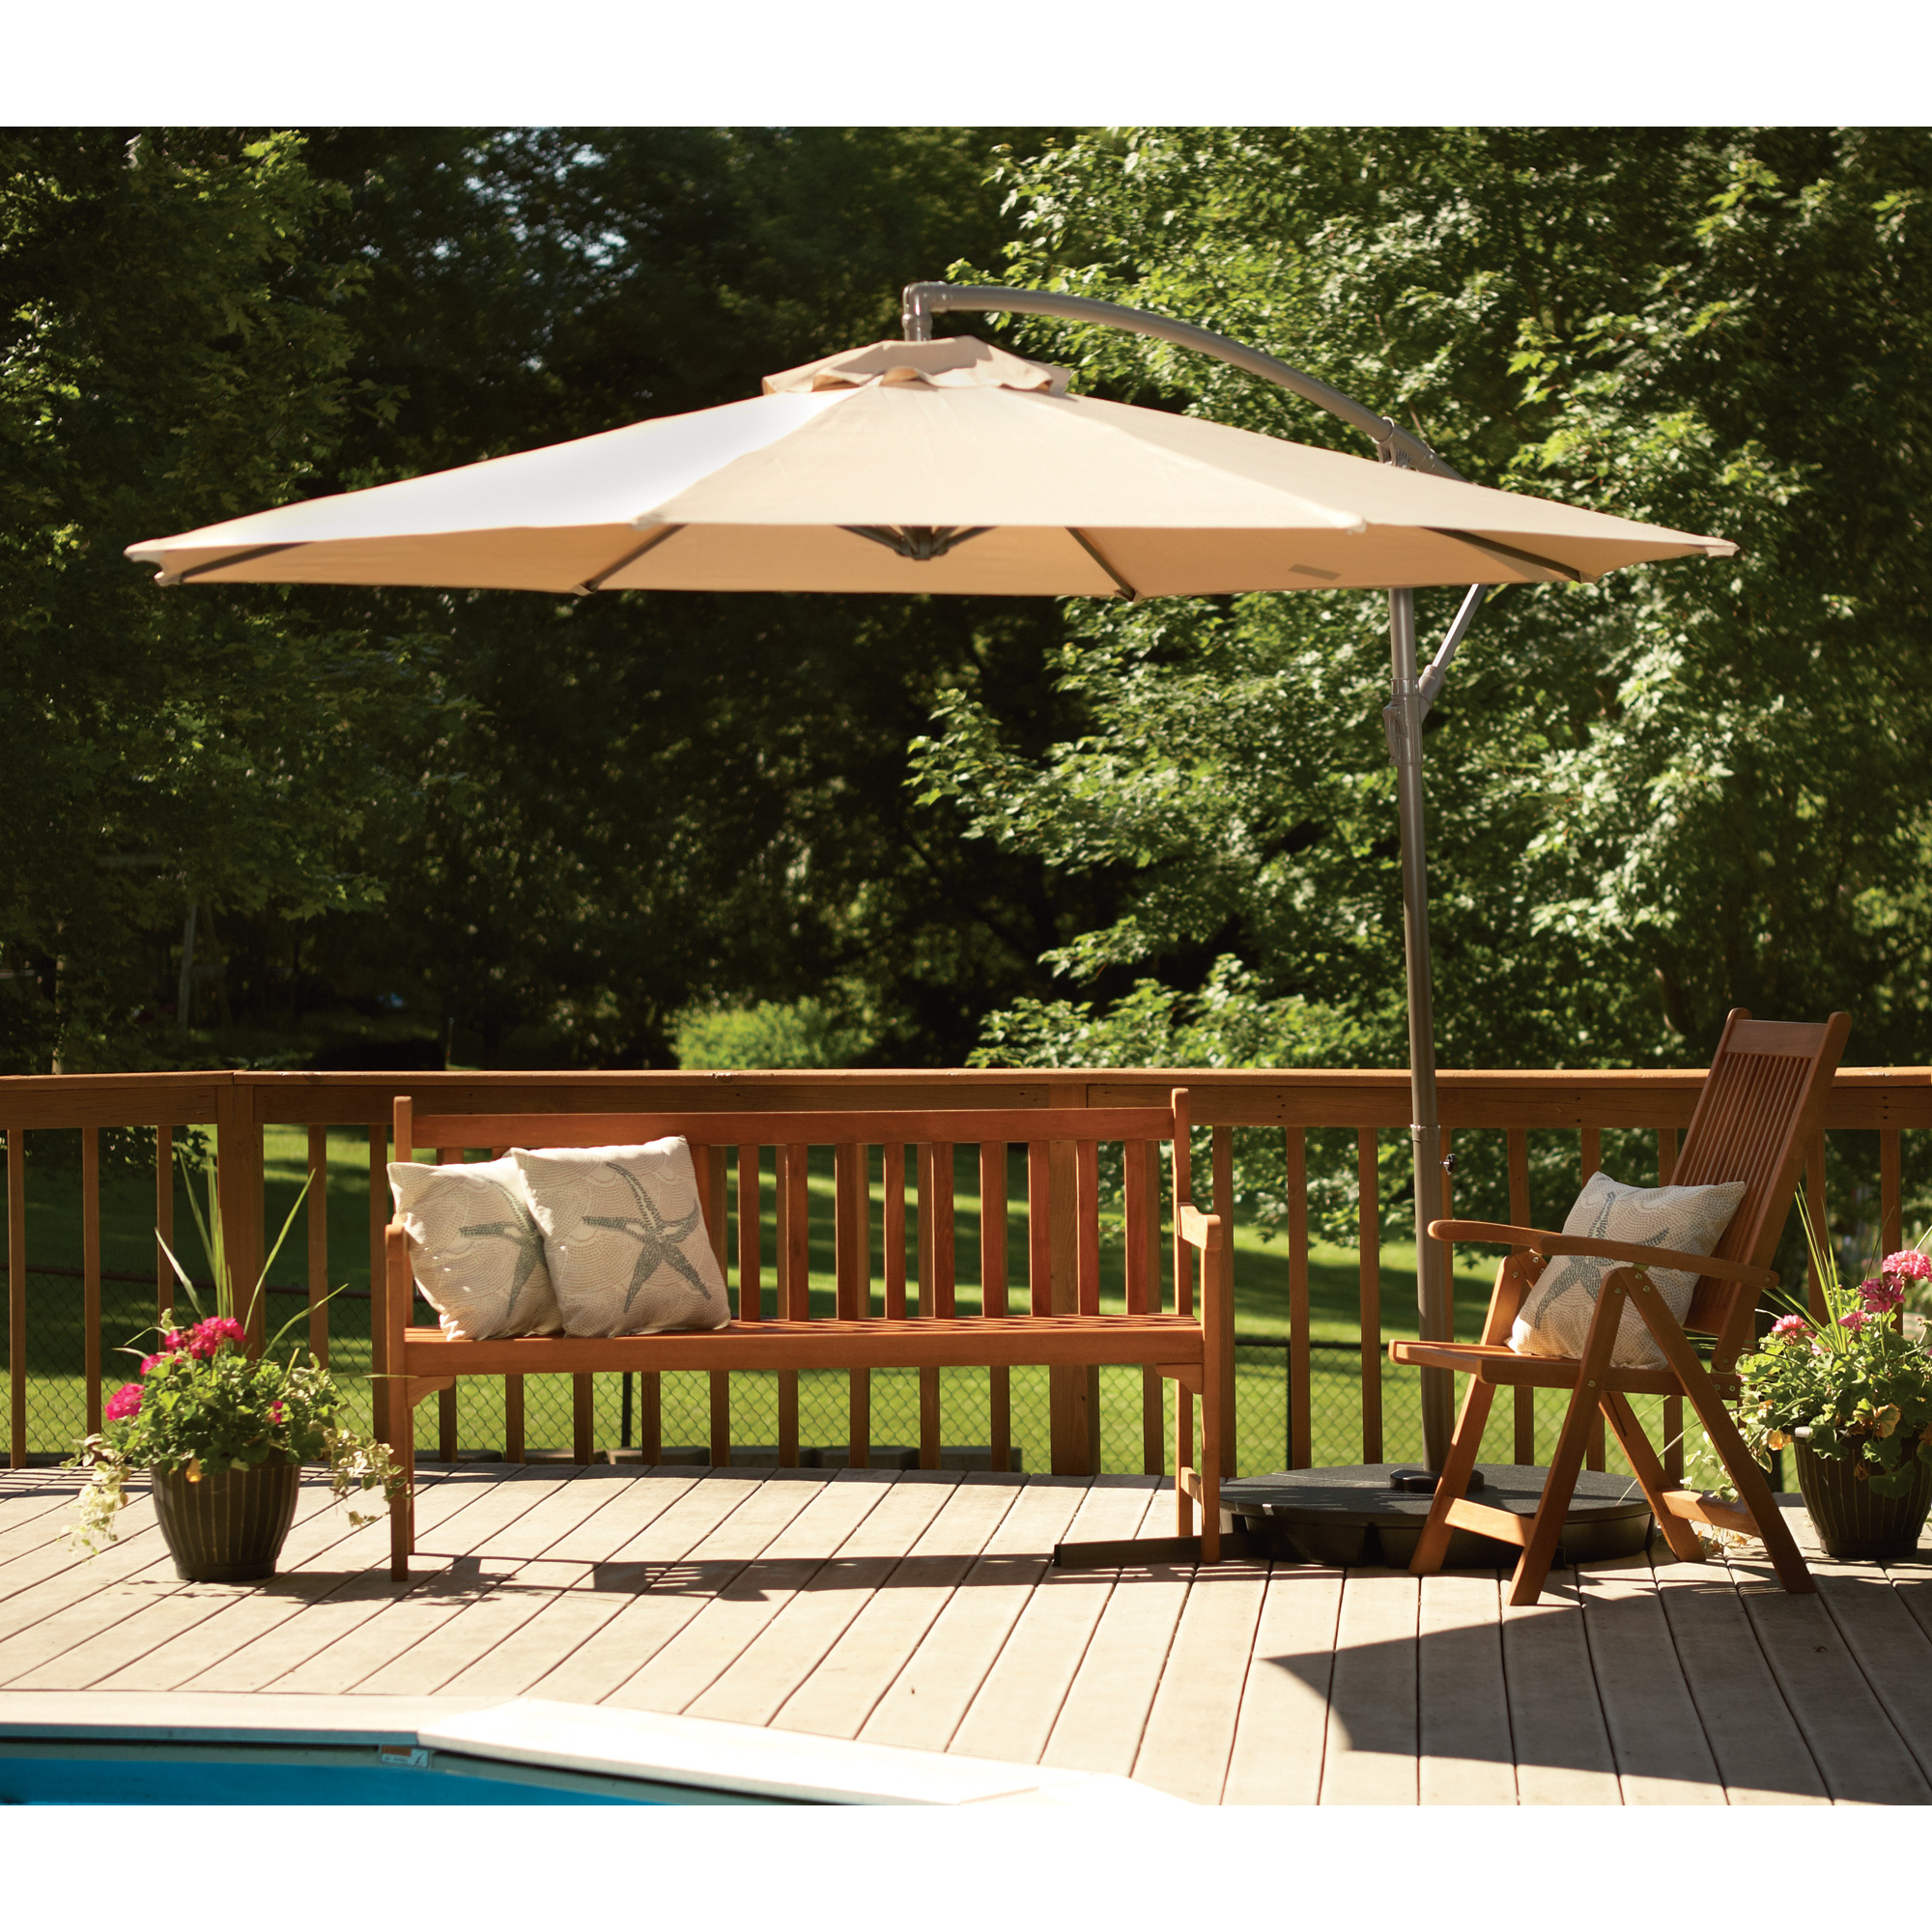 Furniture Charming Cream Cantilever Patio Umbrella With Metal